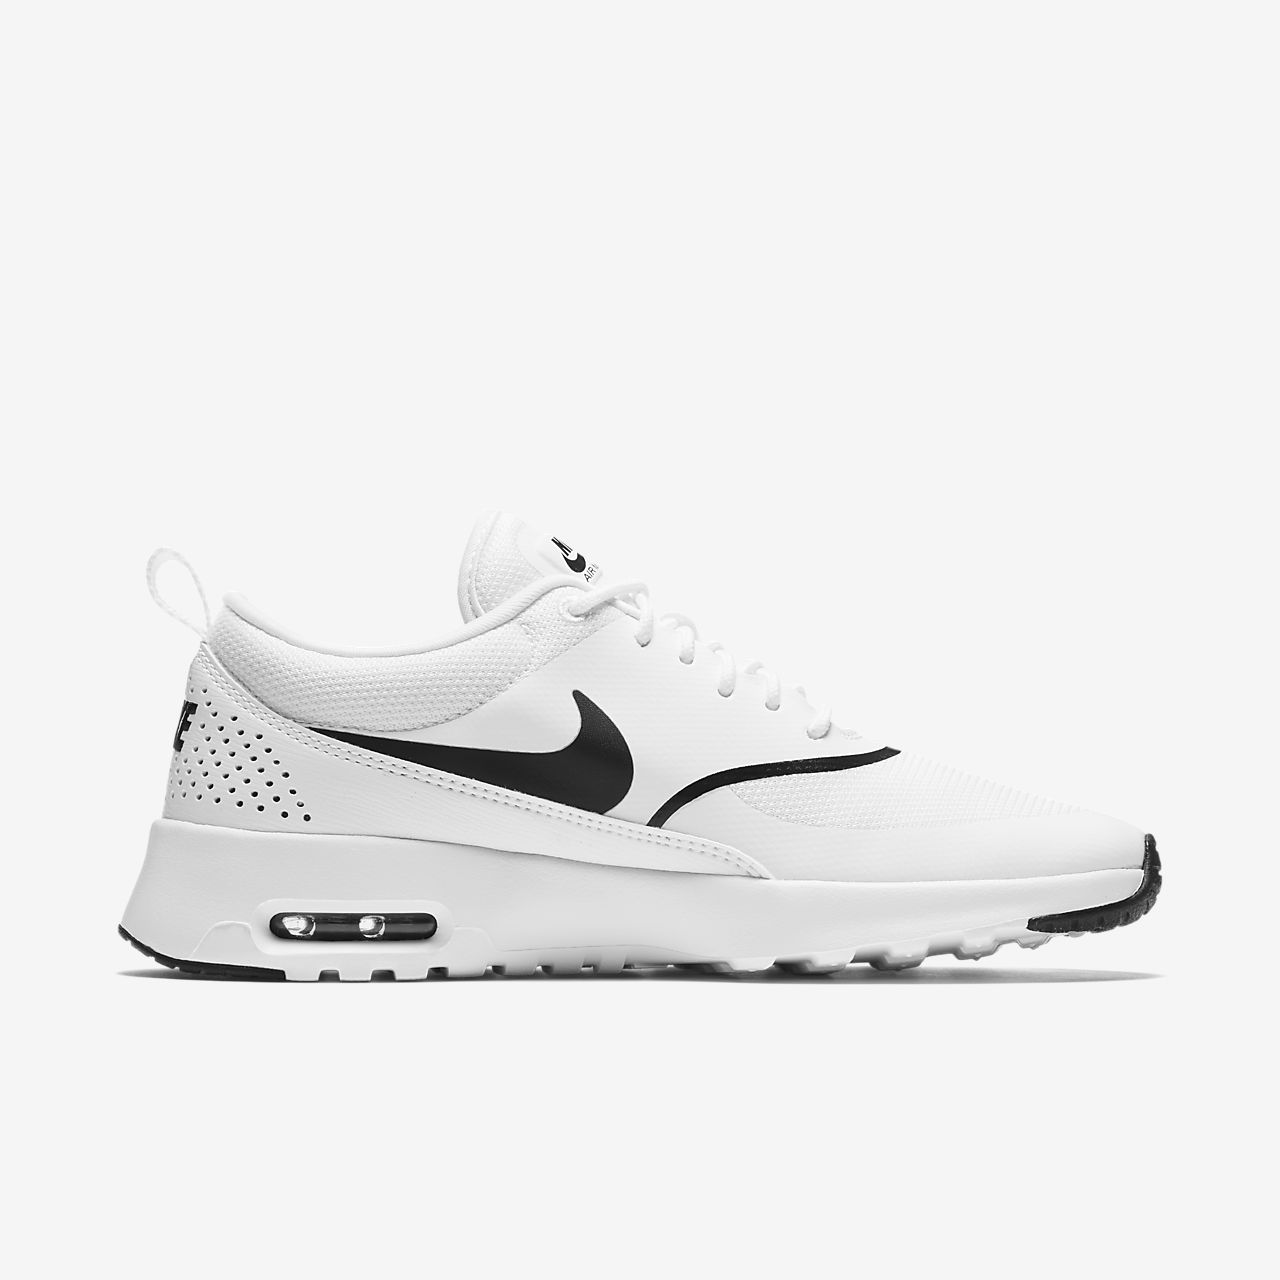 c77fd0a984 Low Resolution Nike Air Max Thea Women's Shoe Nike Air Max Thea Women's Shoe